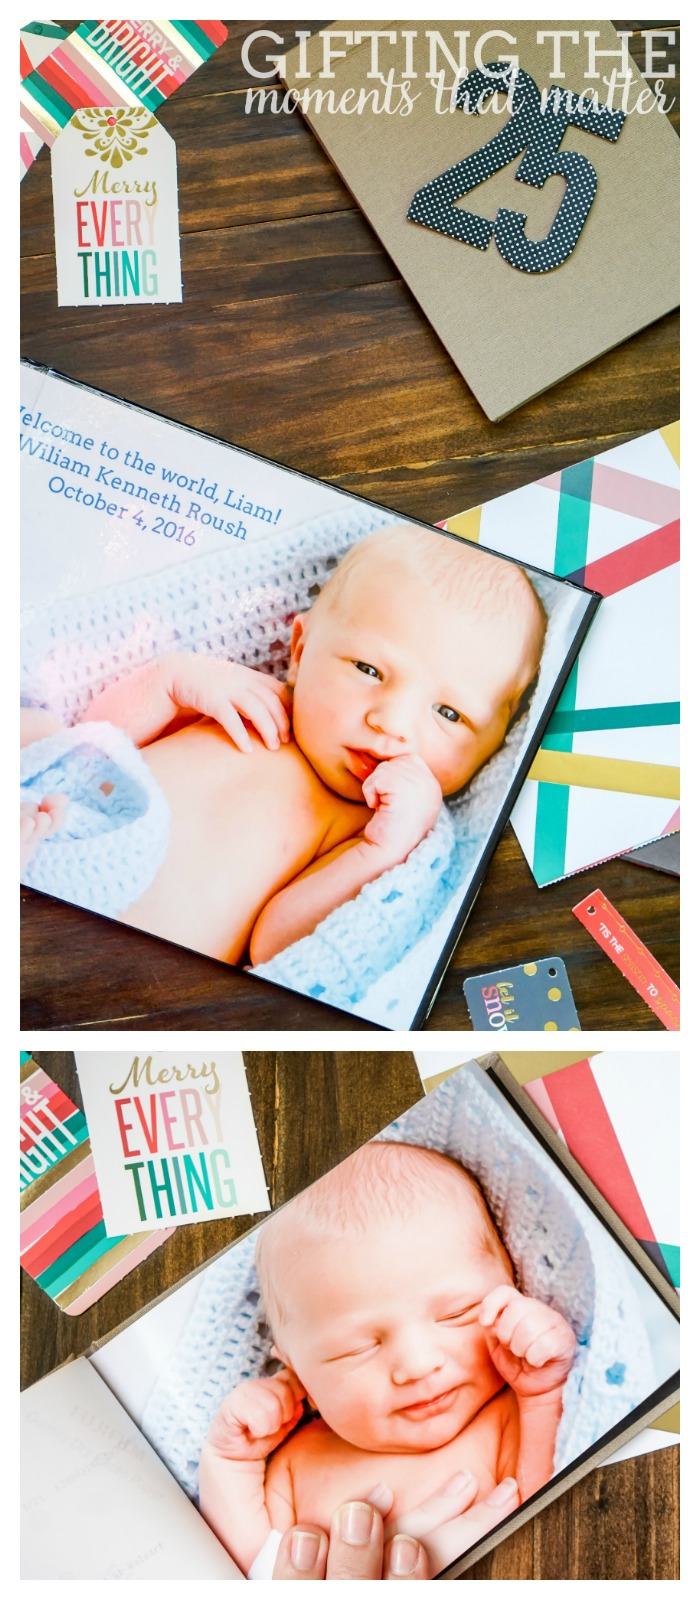 Gifting the Moments that Matter - Celebrate all the wonderful moments in our lives with these personalized photo gift ideas! | The Love Nerds AD